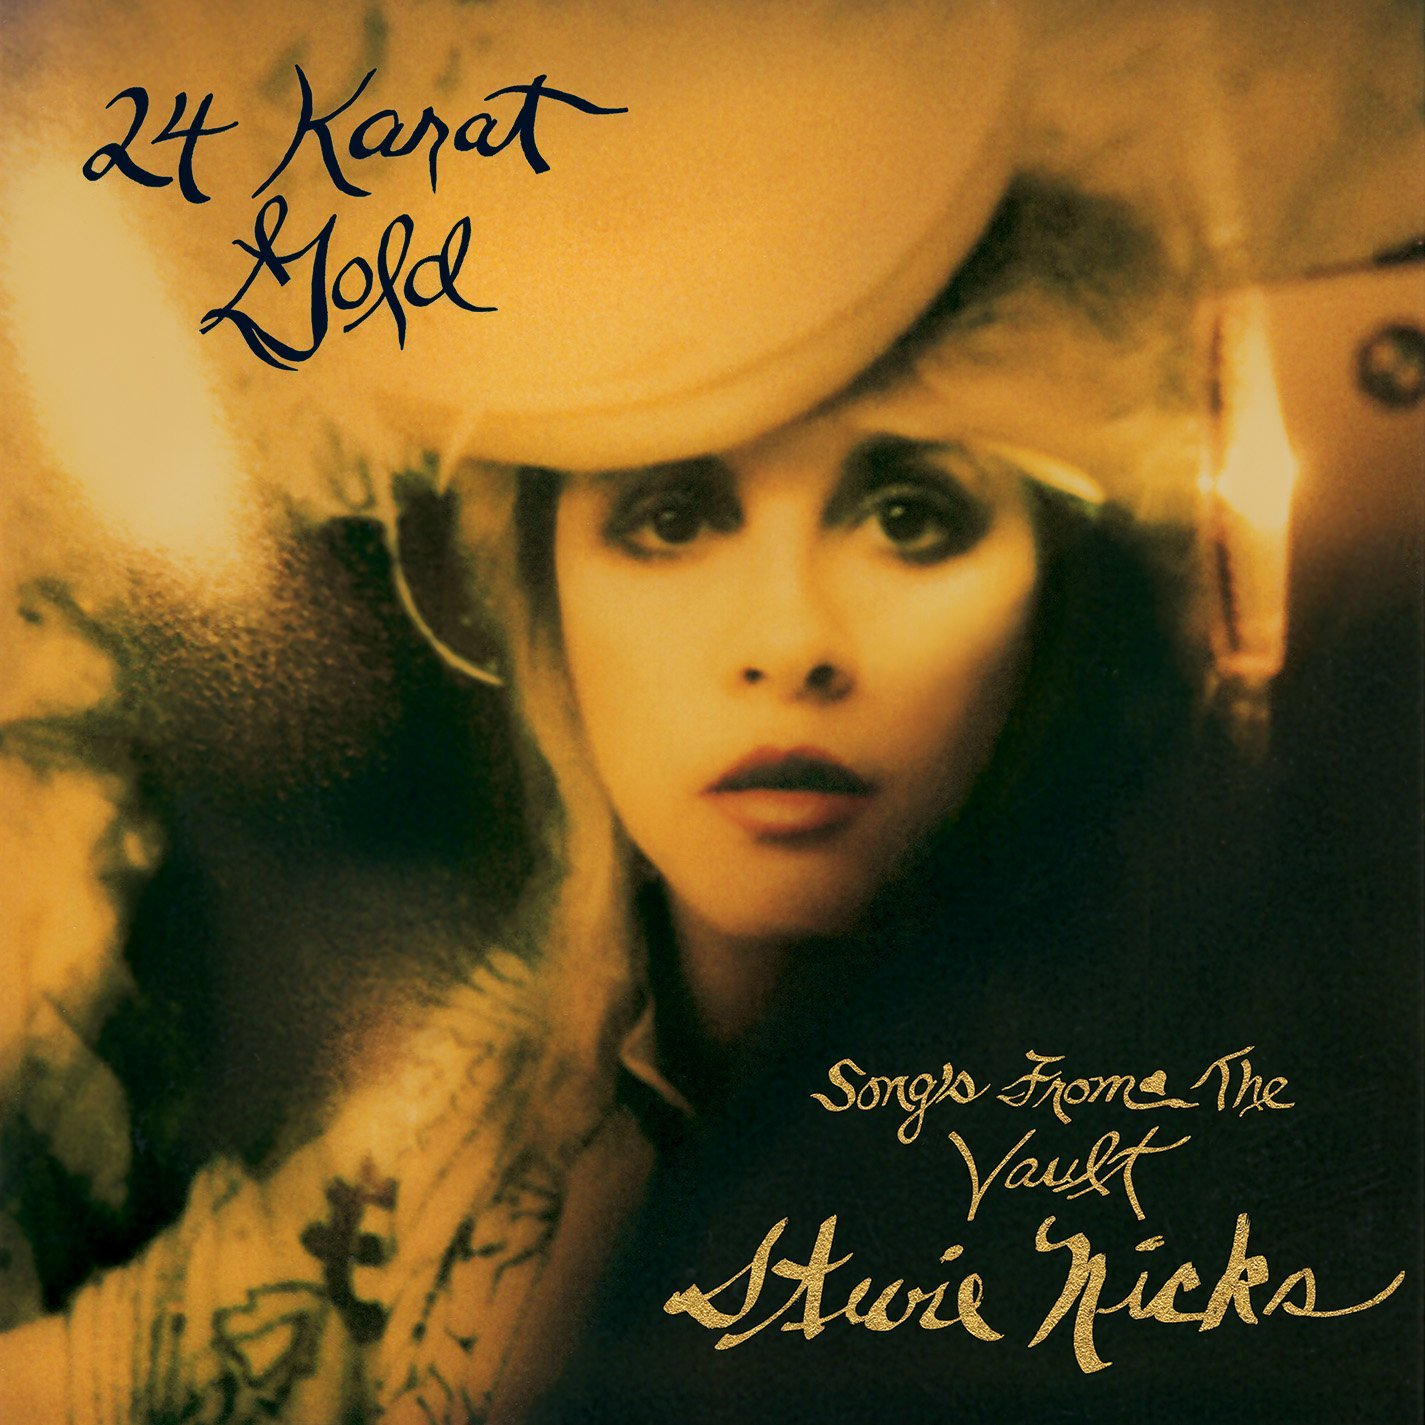 Stevie Nicks, 24 Karat Gold – Songs from the Vault | Album Review